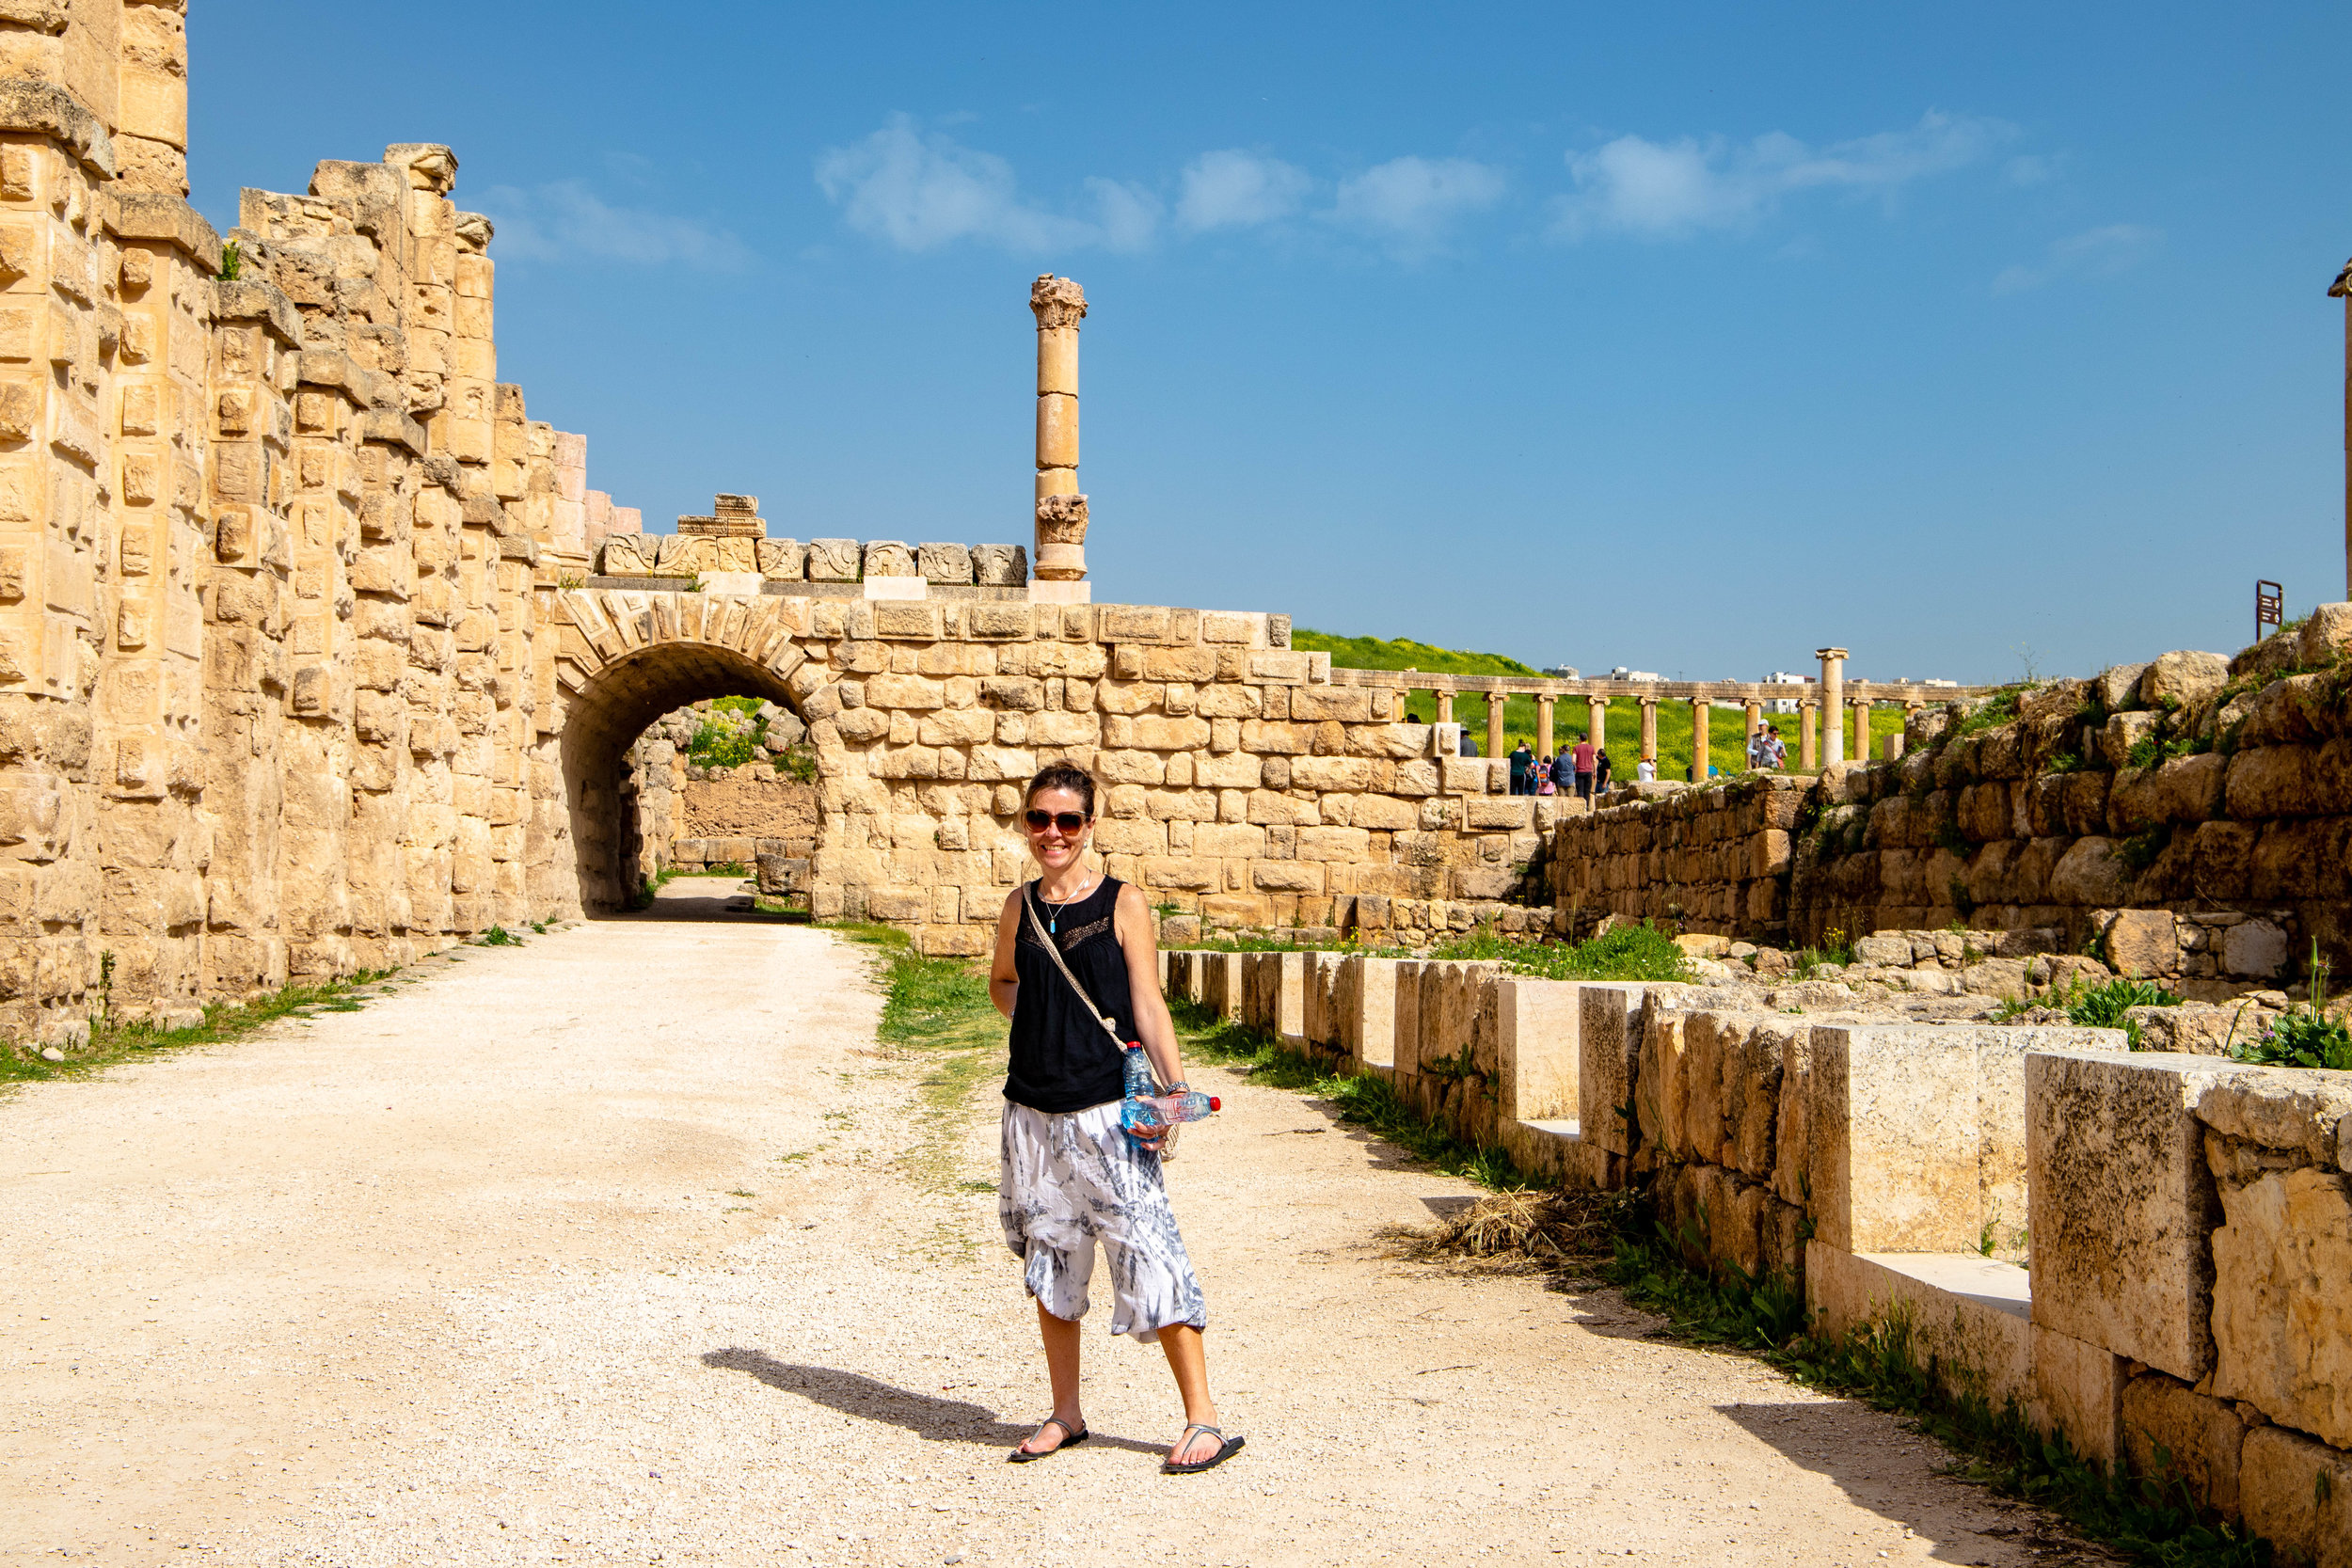 Buzz leading the way at the beginning of our Jerash jaunt